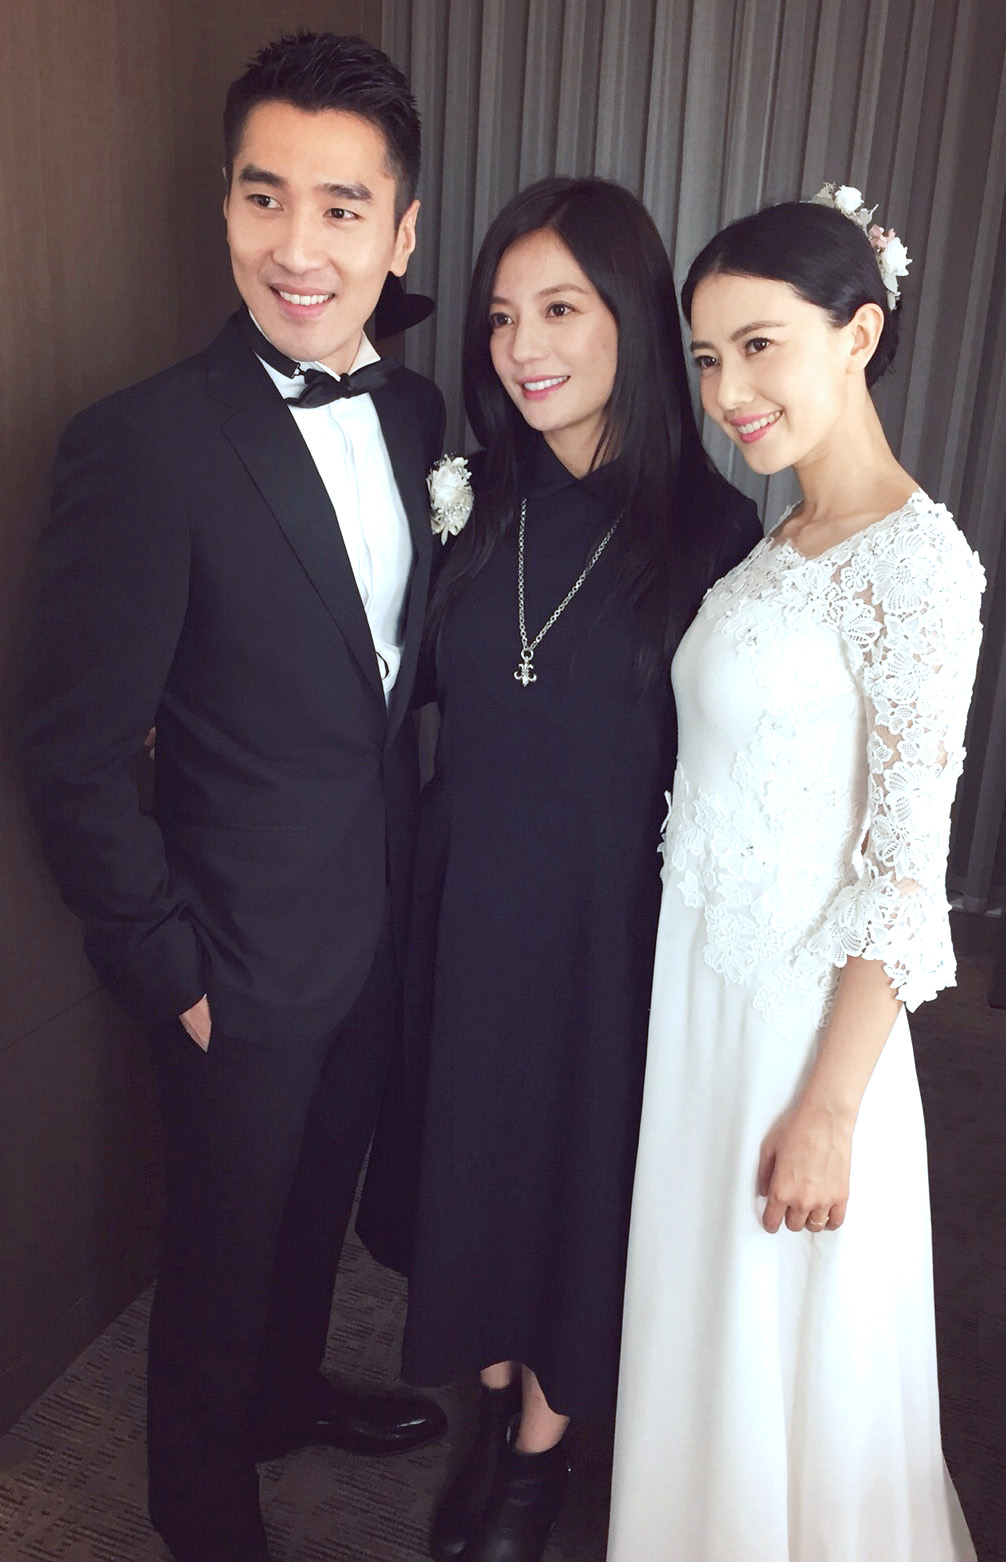 dramaxstyle celebrity wedding mark chao and gao yuan